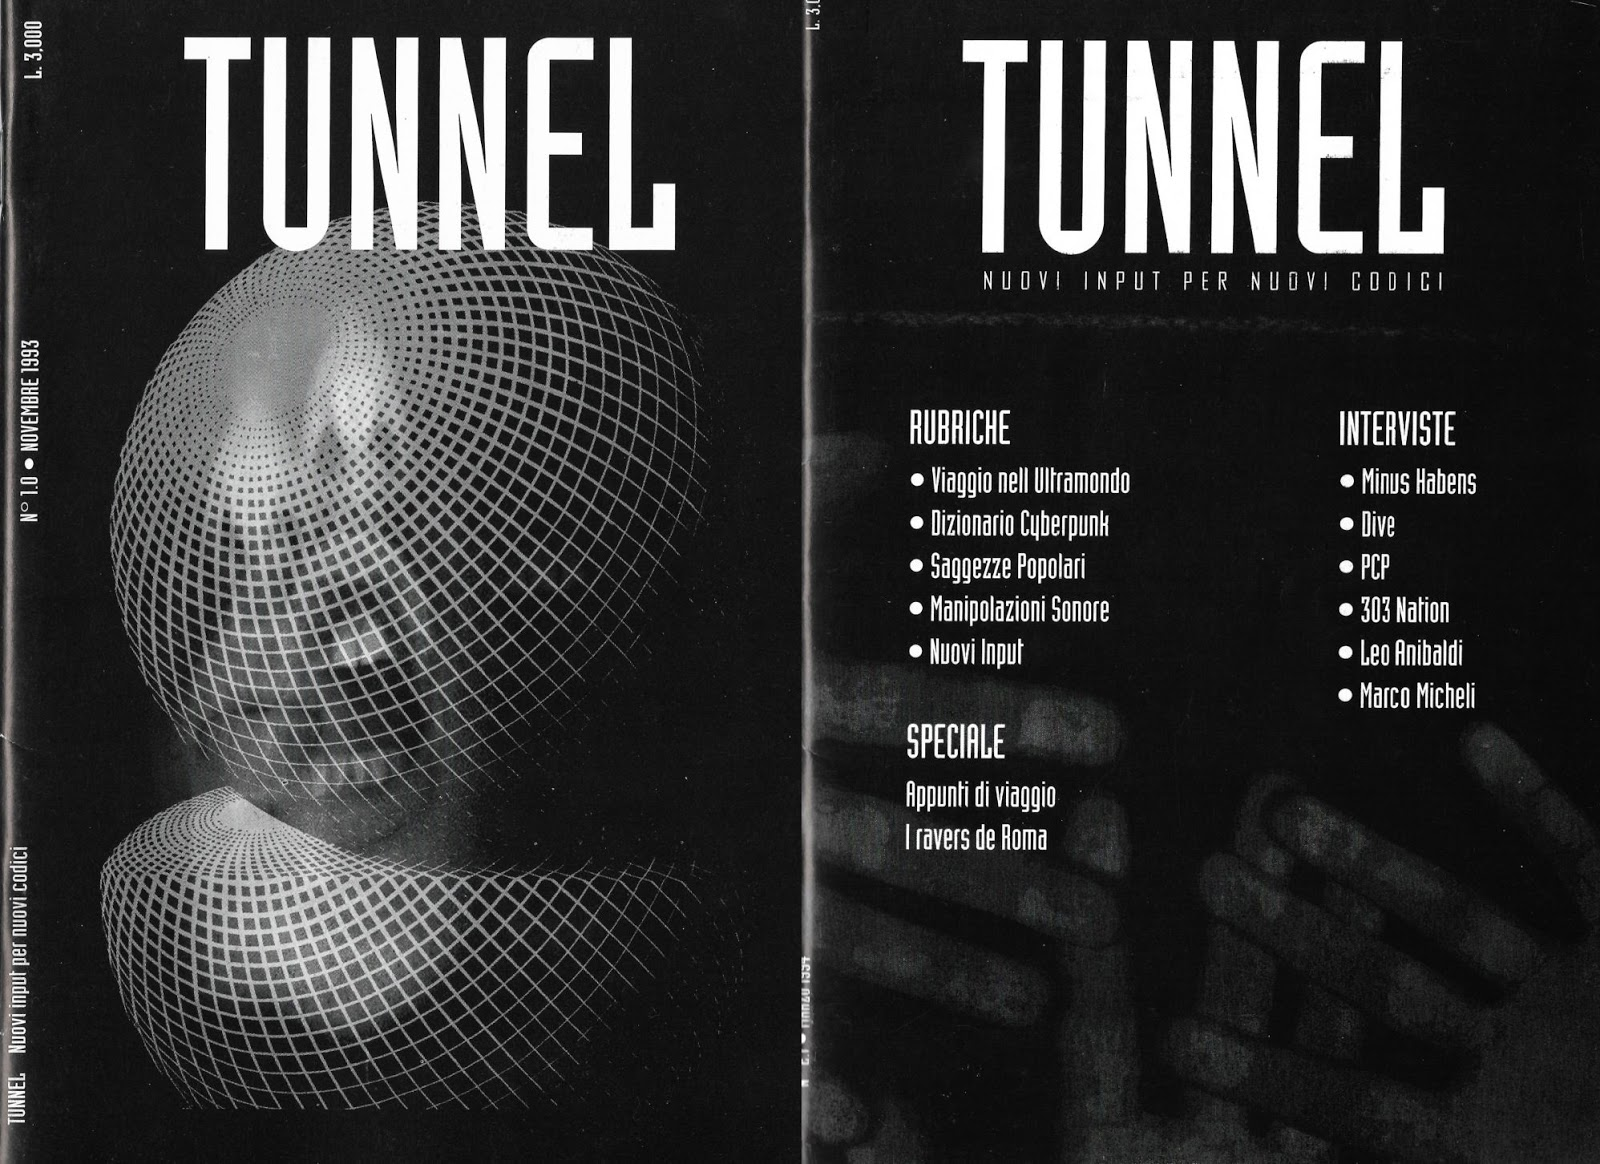 tunnel-1-2